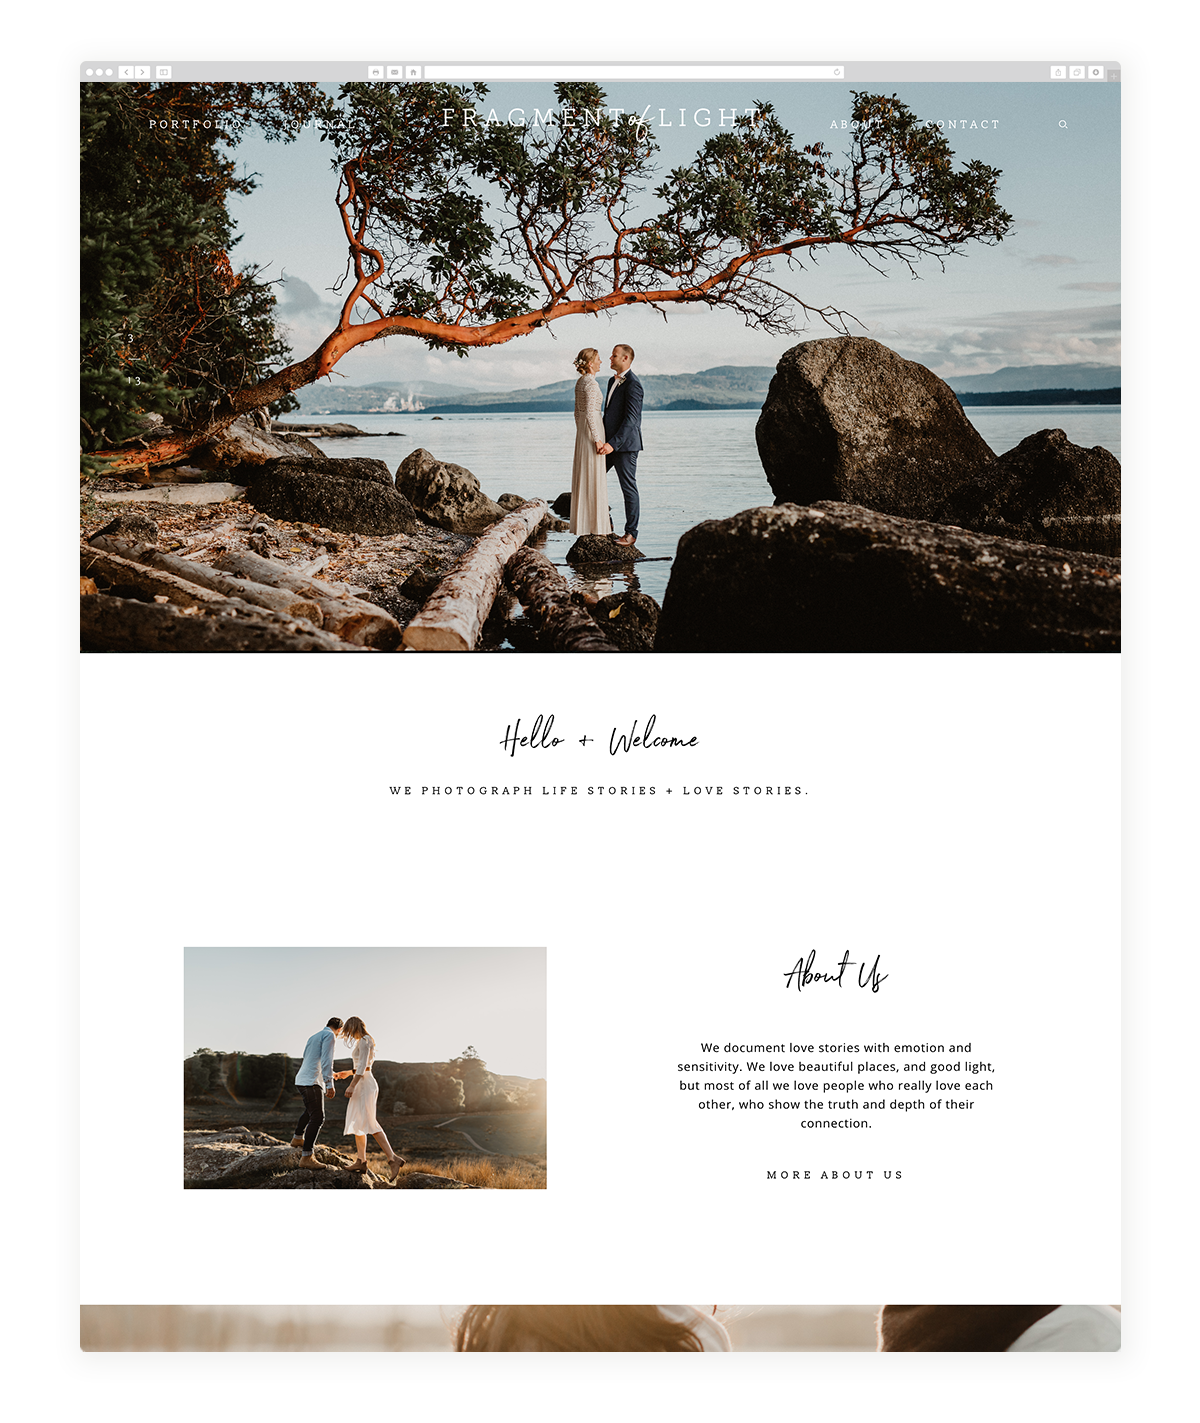 kyoto-website design, theme, wedding photography, site design, flothemes-fragment-of-light